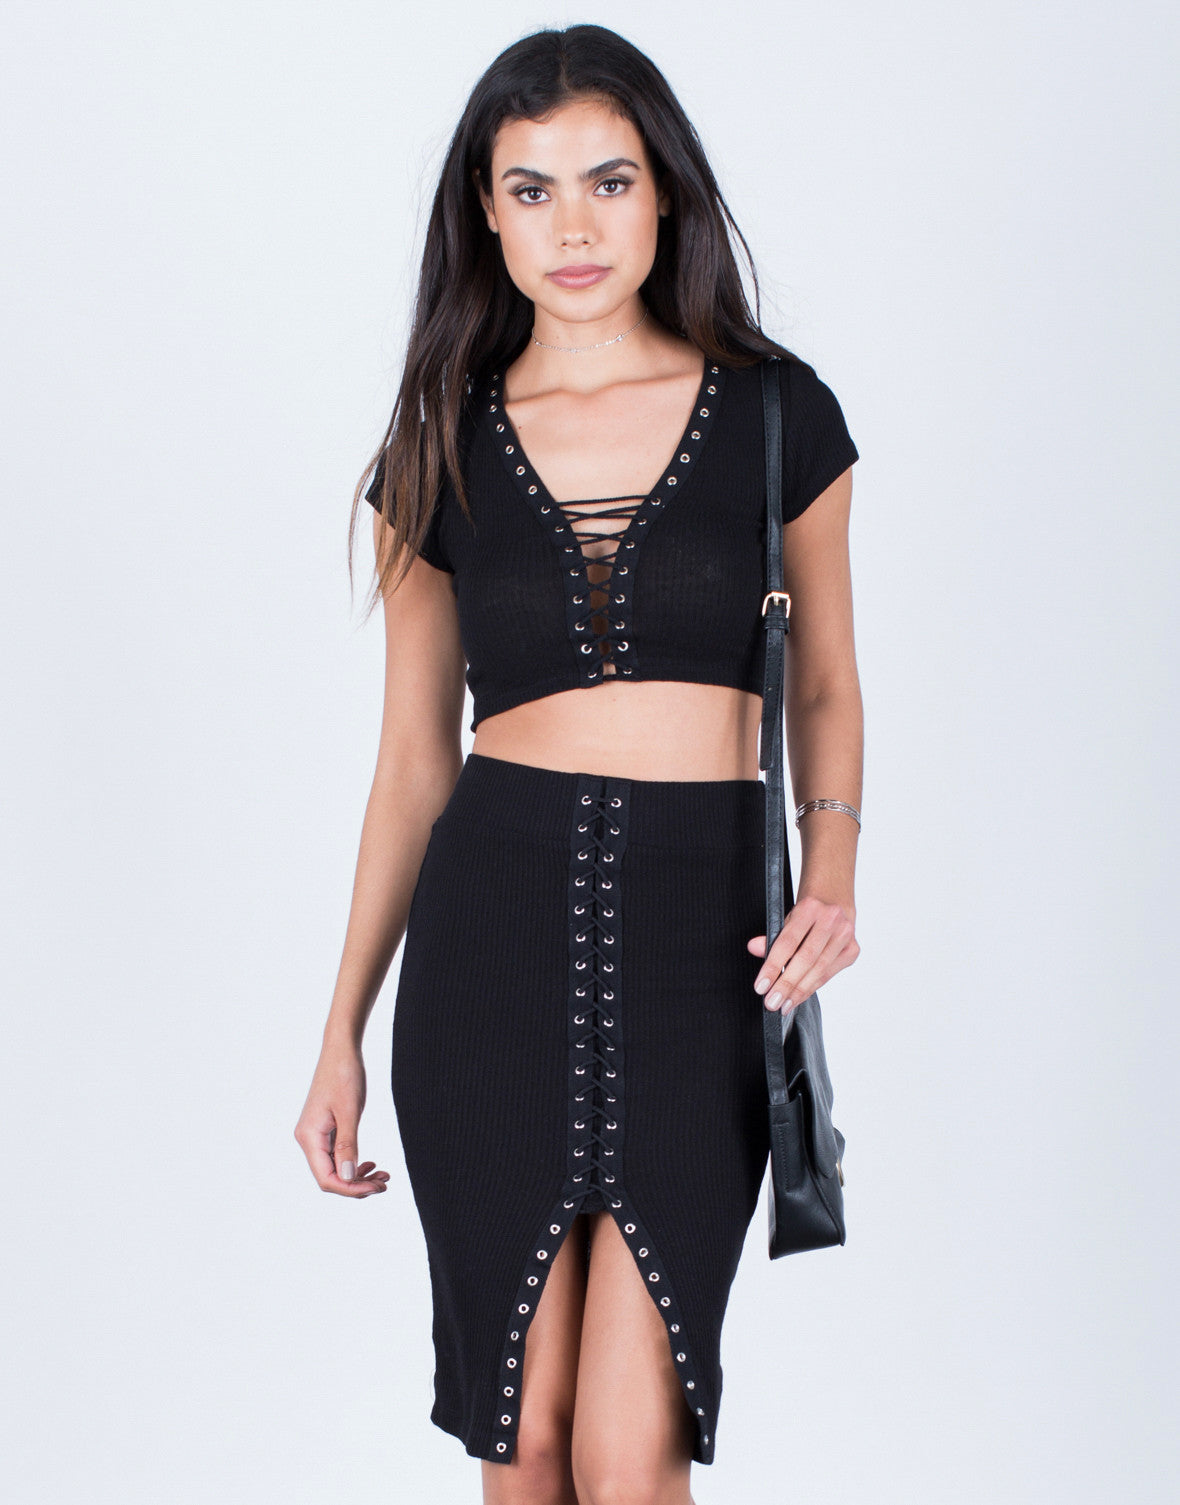 Ribbed Knit Lace-Up Skirt - Black Midi Skirt - Lace Up Skirt ... 7eab325fd